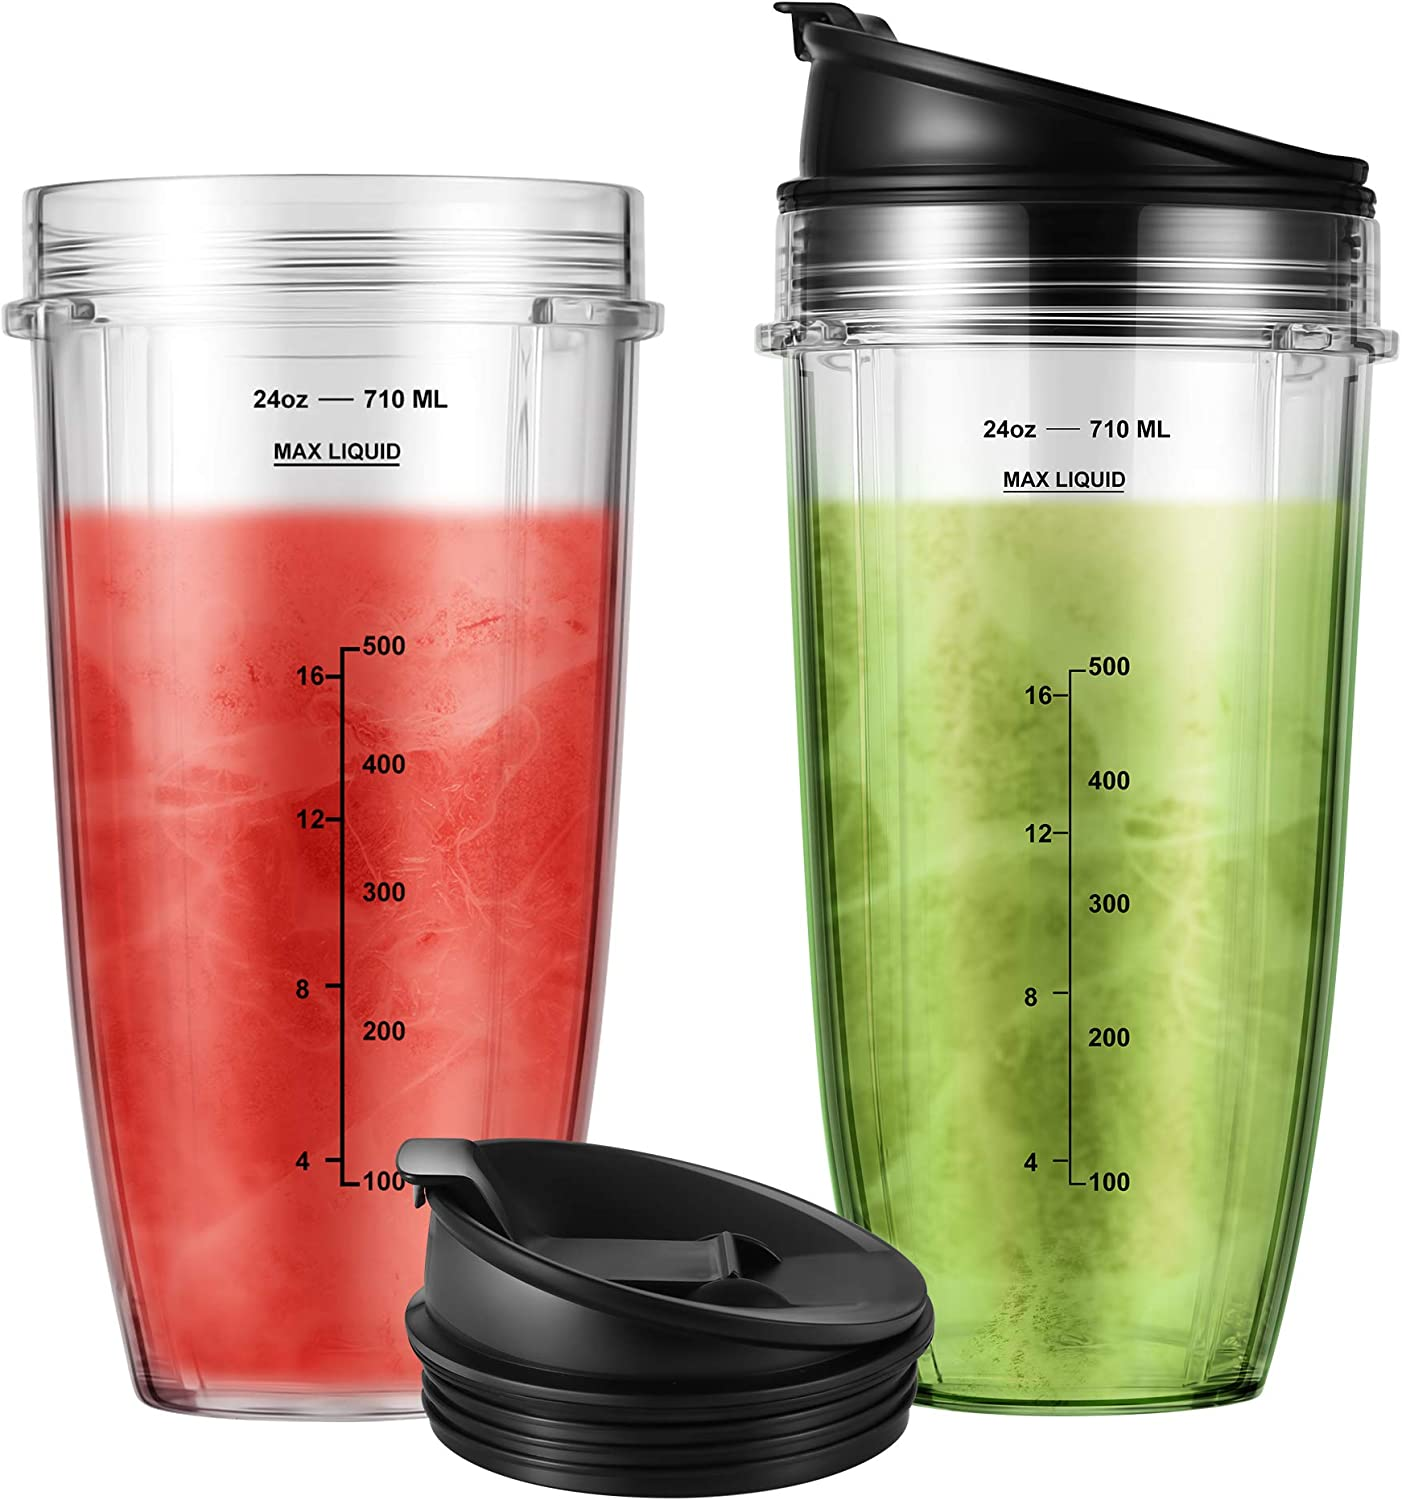 2-Pack 24oz Cup with Sip & Seal Lid Blender Replacement Parts Compatible with Nutri Ninja Auto IQ Series Blenders BL450 BL454 BL456 BL480 BL481 BL482 BL490 BL640 BL642 BL682